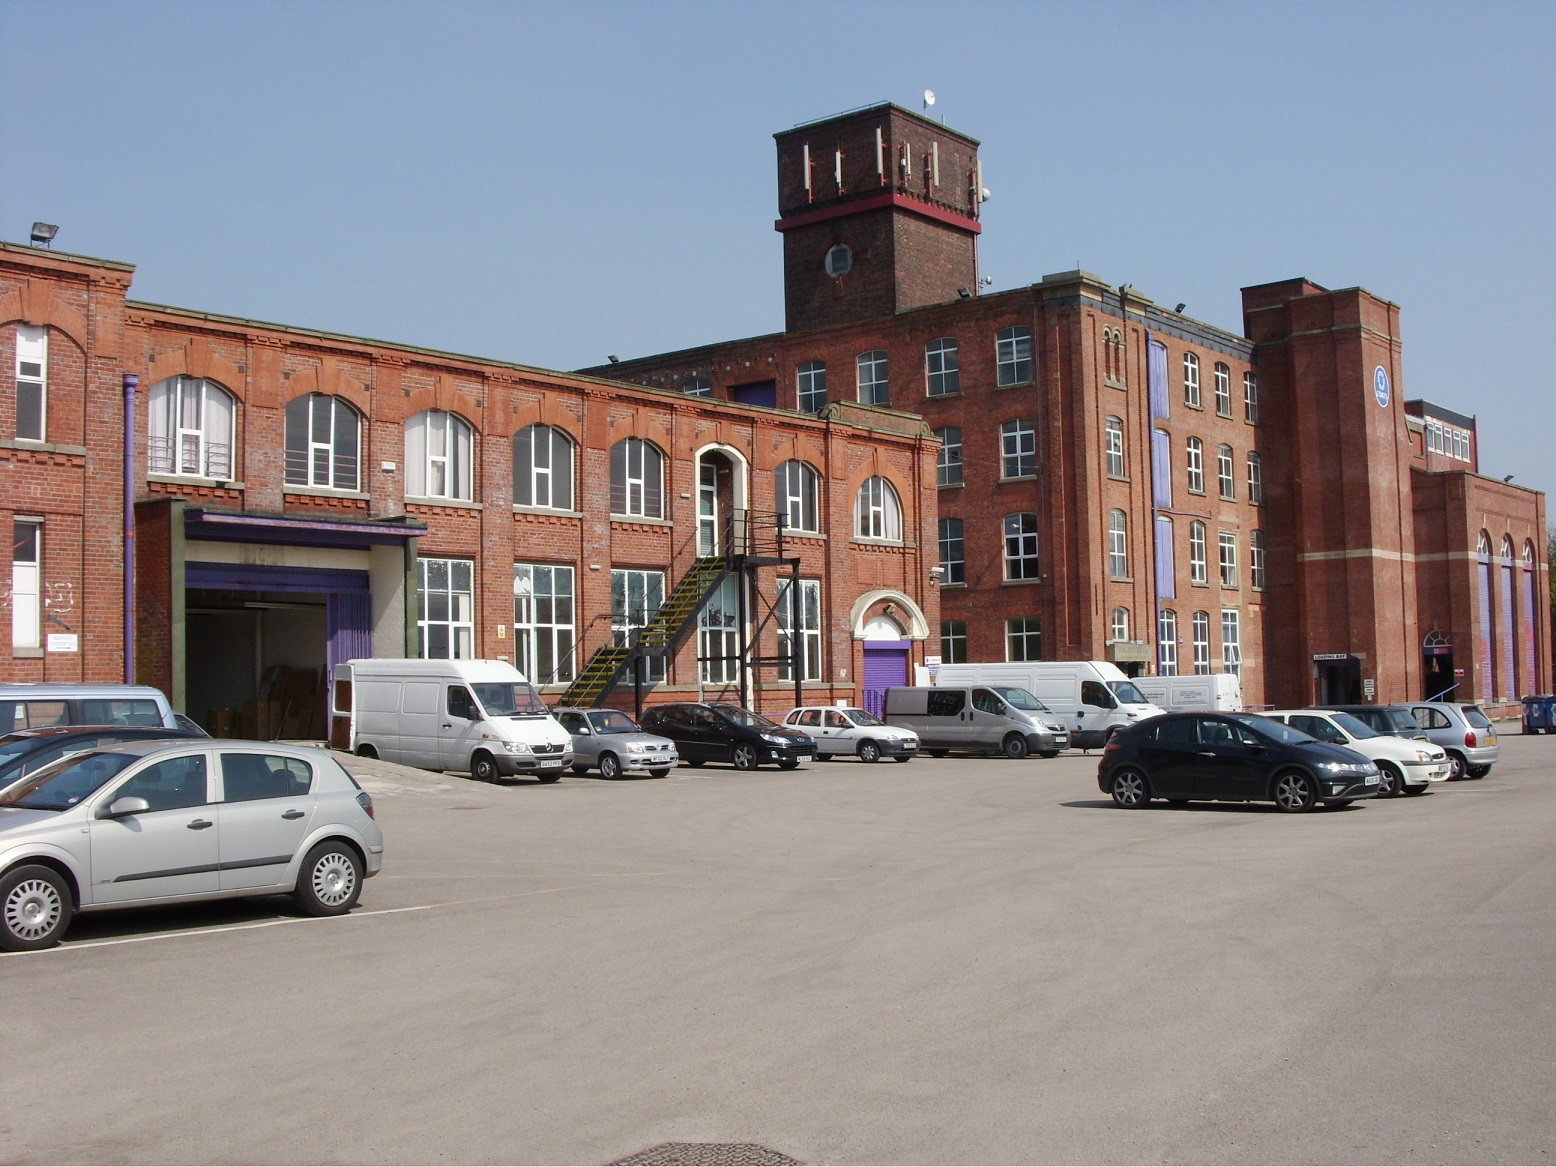 Space - Rossini St, BL1 - Bolton (Has Industrial Also)